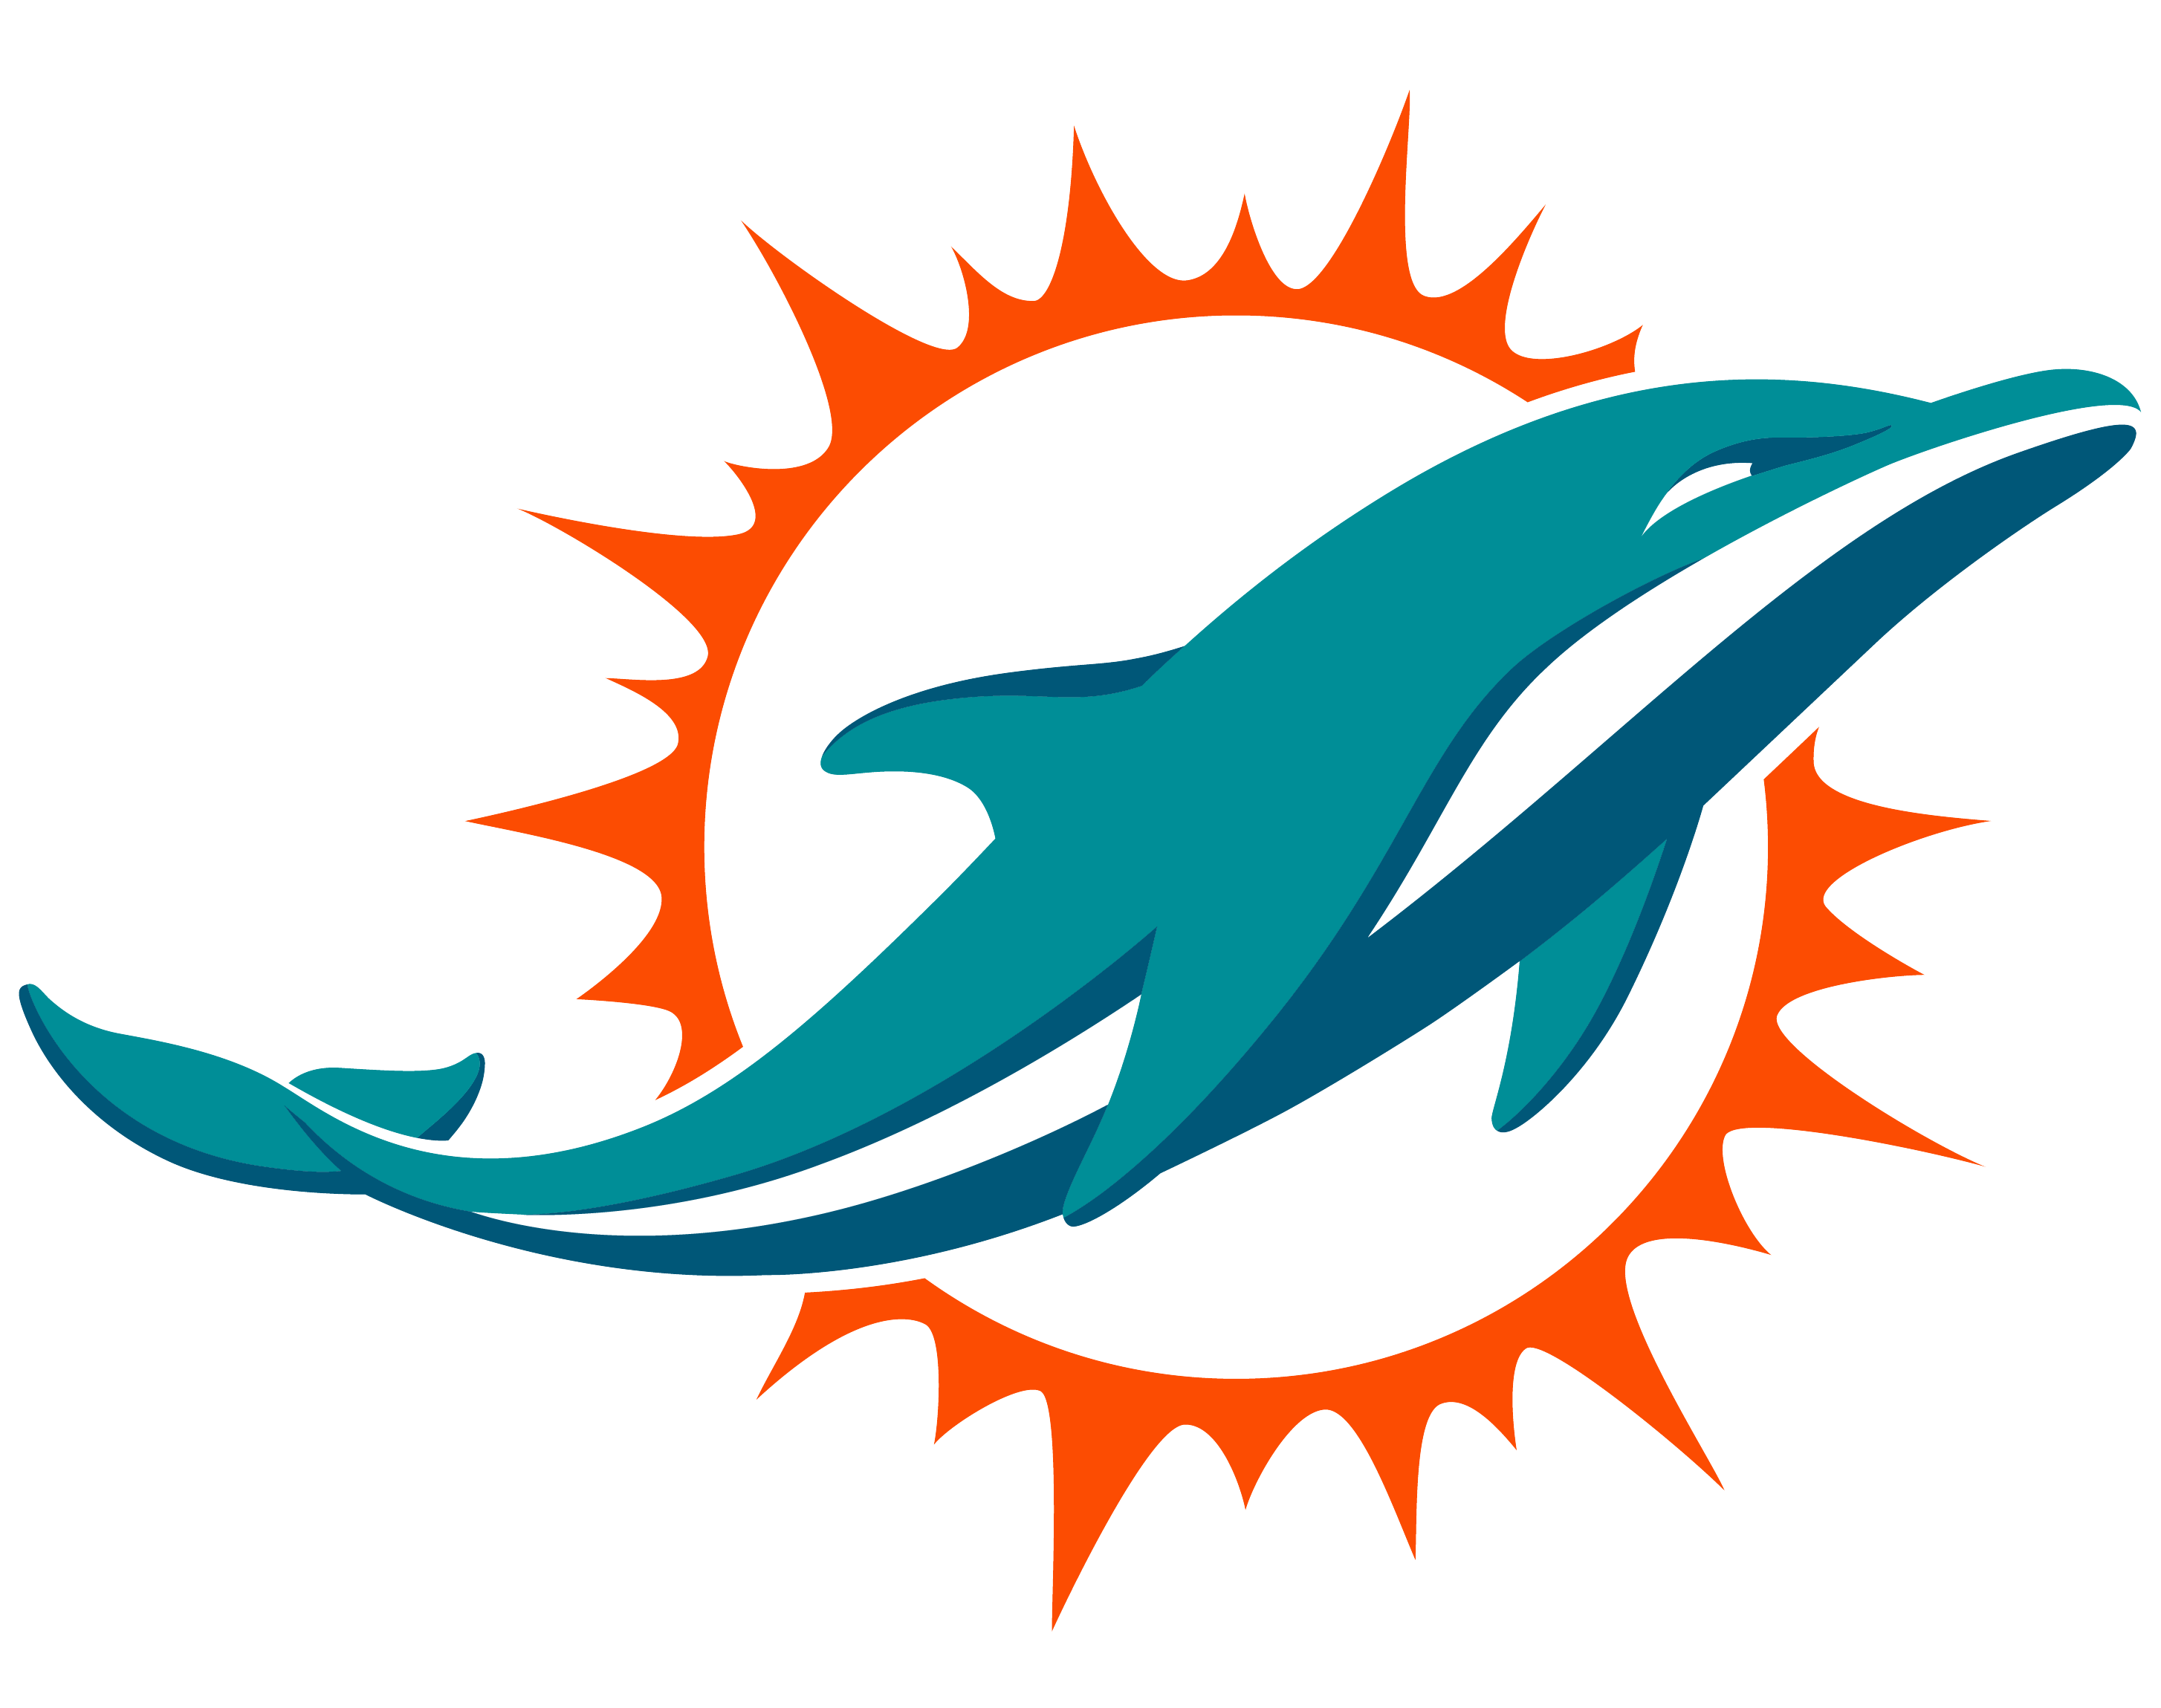 Dolphin clipart vacation florida. Miami dolphins cheerleaders